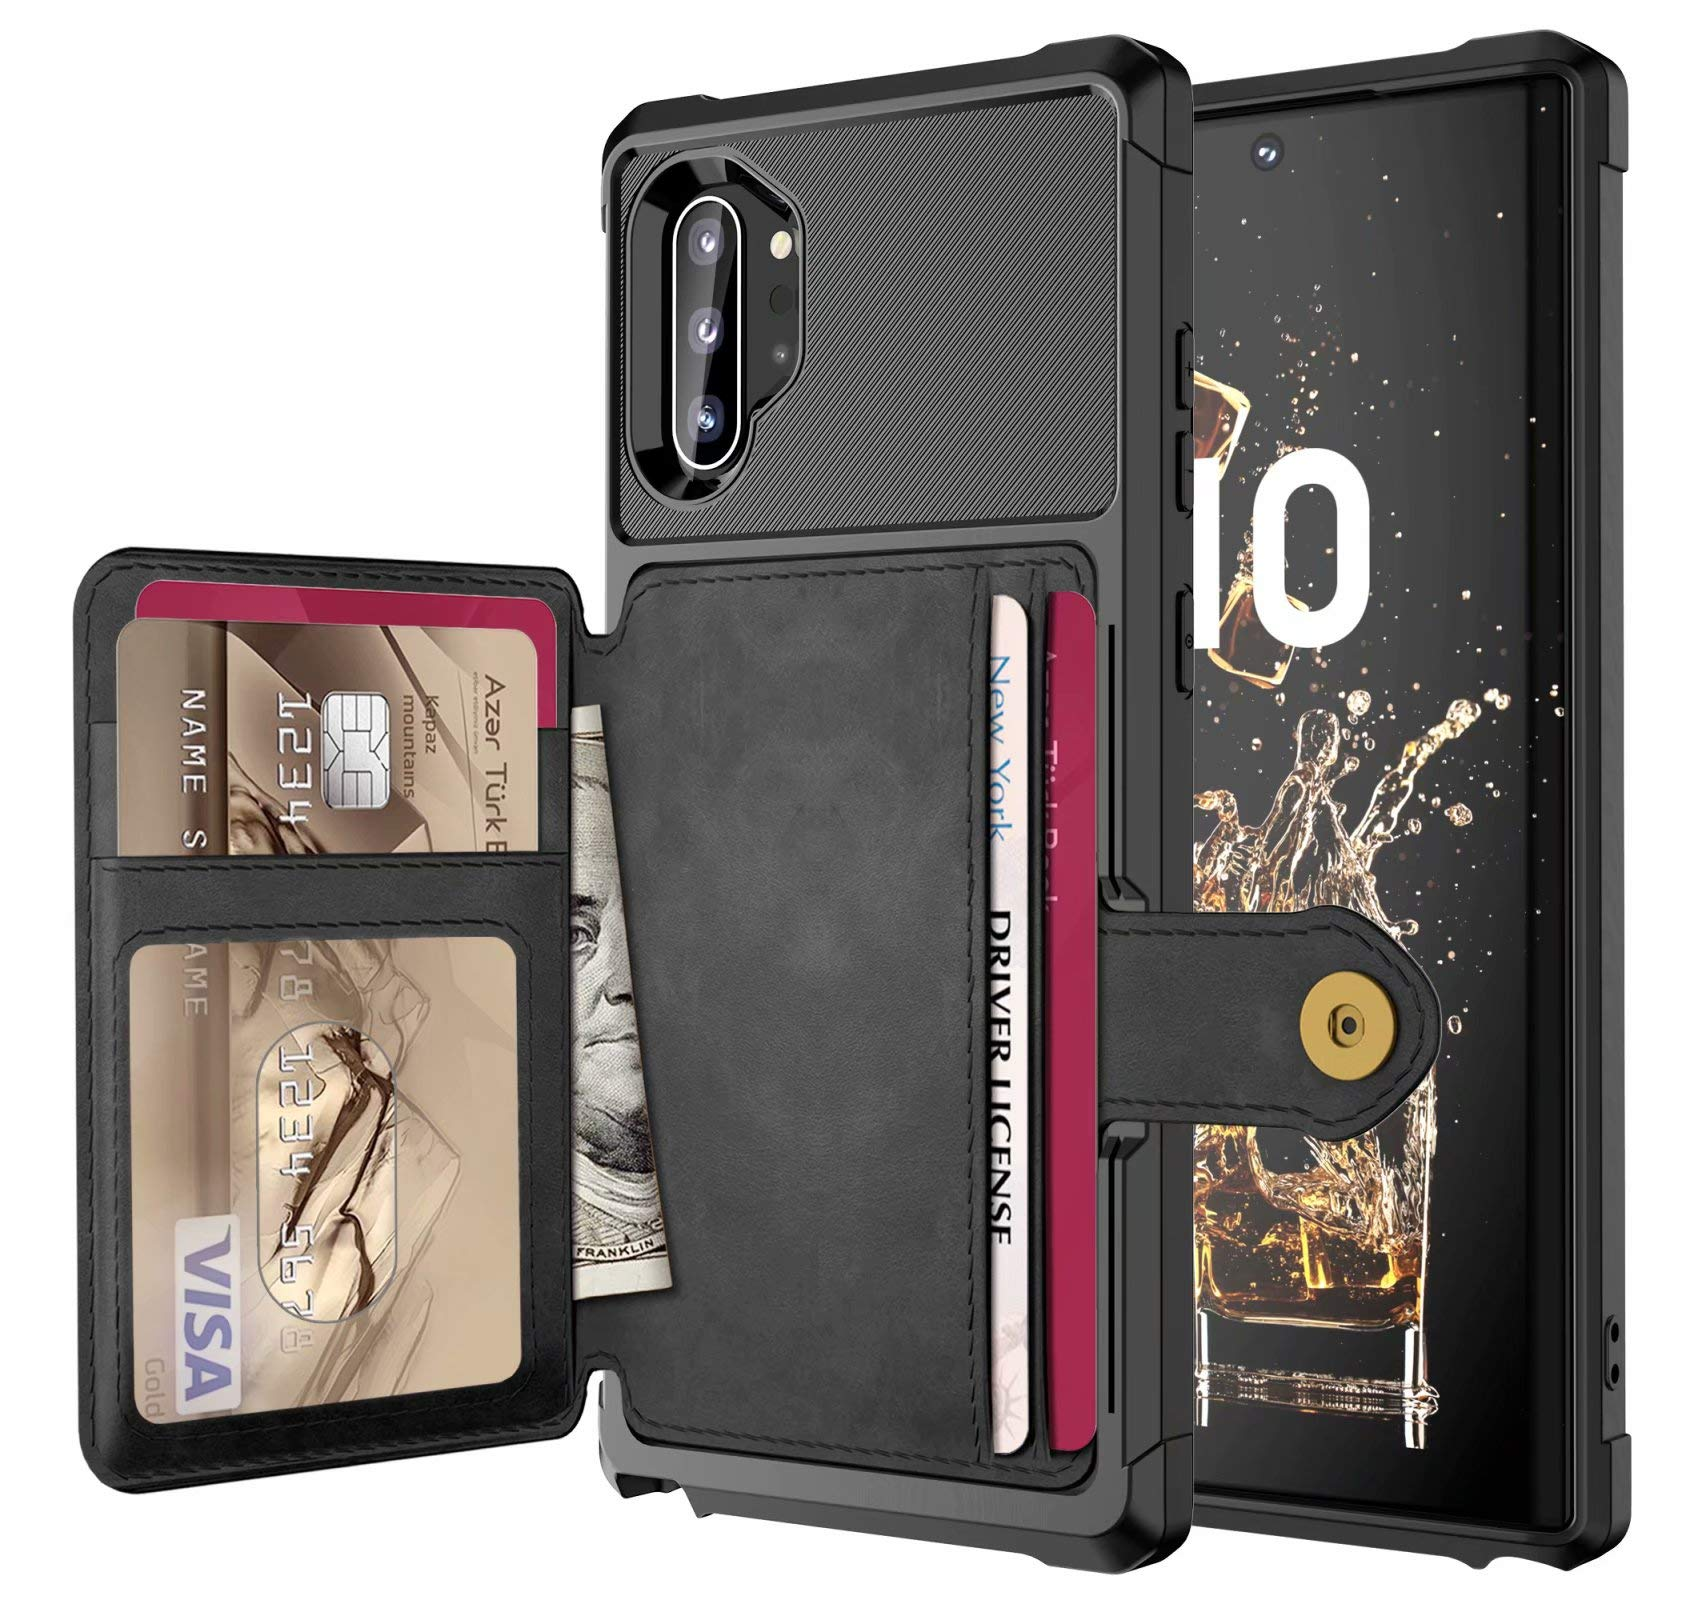 Galaxy Note 10 Plus Case, Ranyi Full Body Protective Magnetic Absorption Wallet Case with Credit Card Holder Slots Shock Absorbing Flip Wallet Case for Samsung Galaxy Note 10 Plus/Pro/5G (Black) by Ranyi